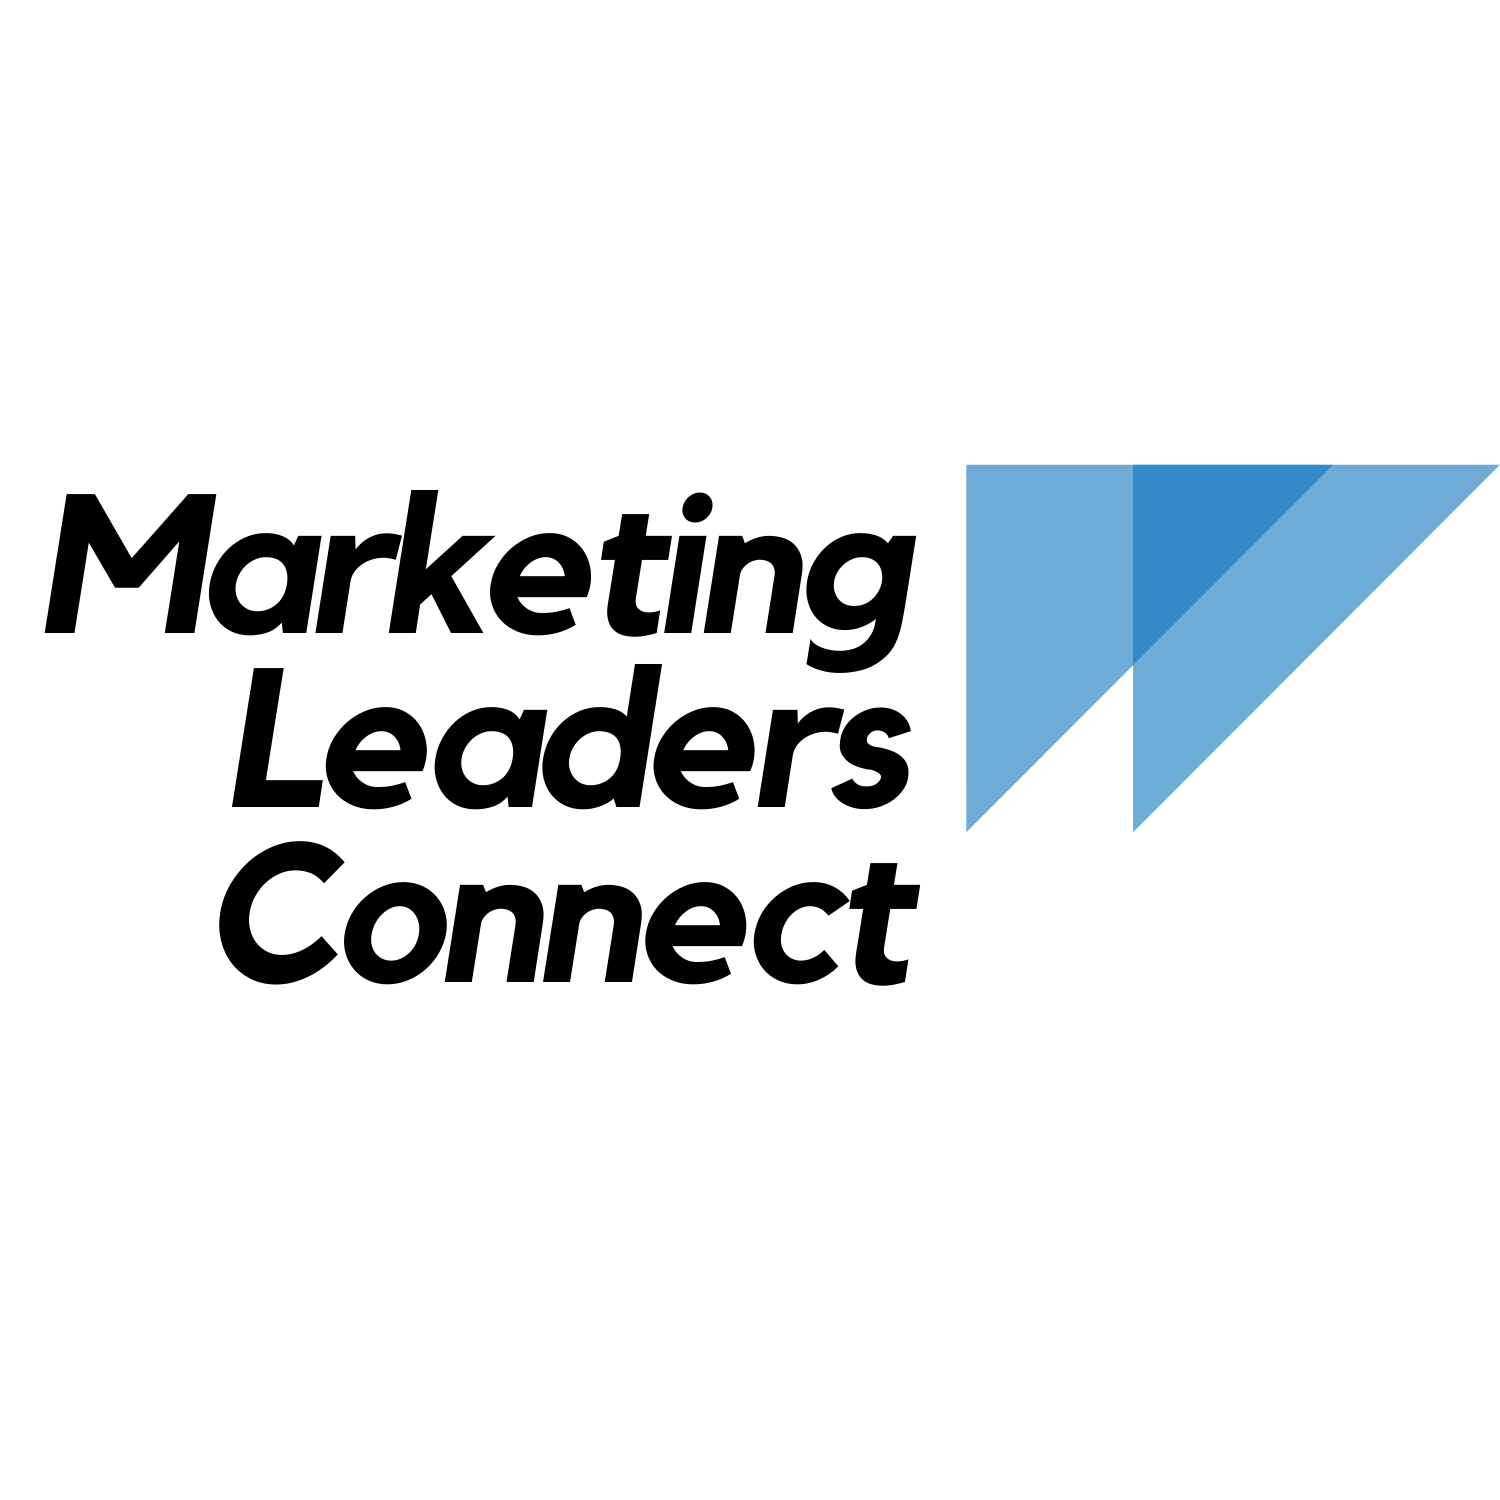 Marketing Leaders Connect